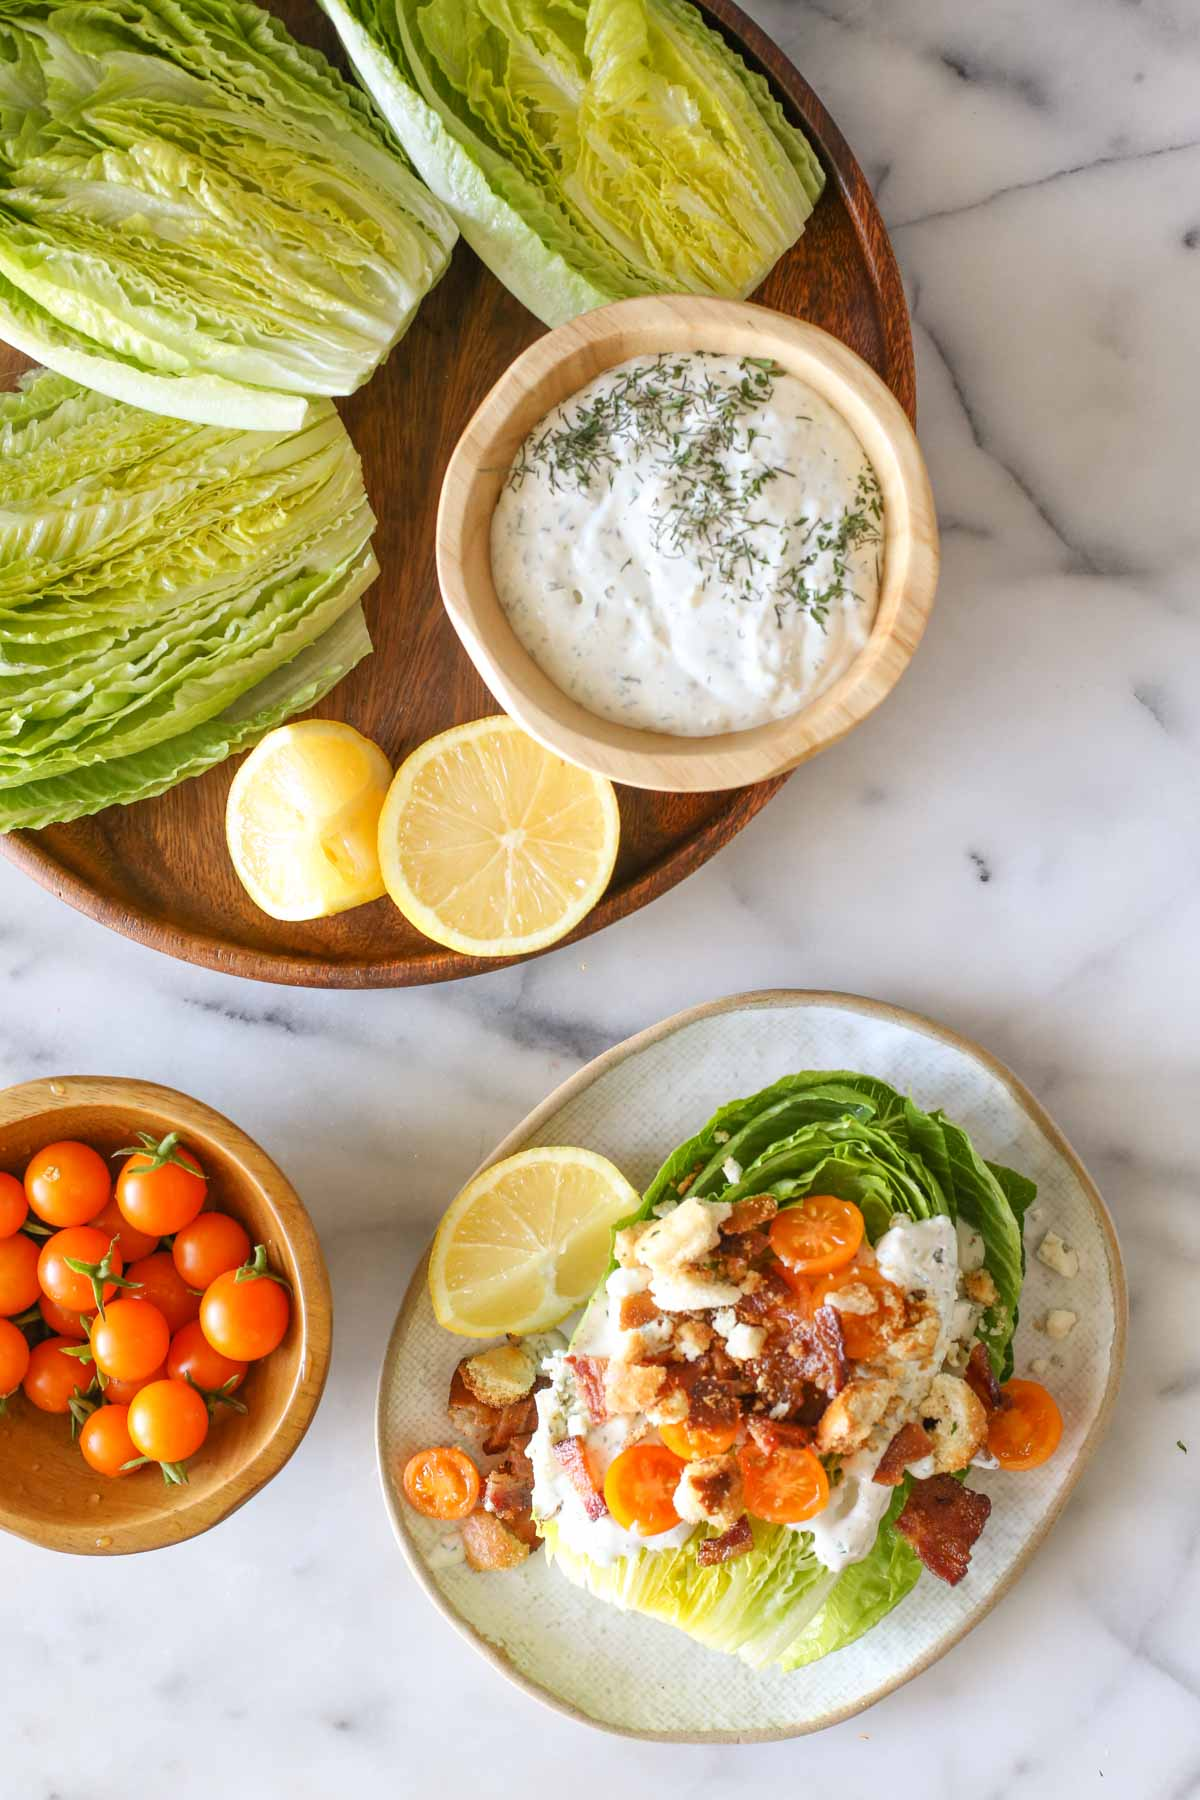 Overhead shot of a wood platter with three romaine lettuce halves, lemon wedges and a wood bowl of the blue cheese dressing on it, sitting next to a wood bowl of Sungold tomatoes, and a Wedge Style BLT Salad on a plate, all on a marble background.